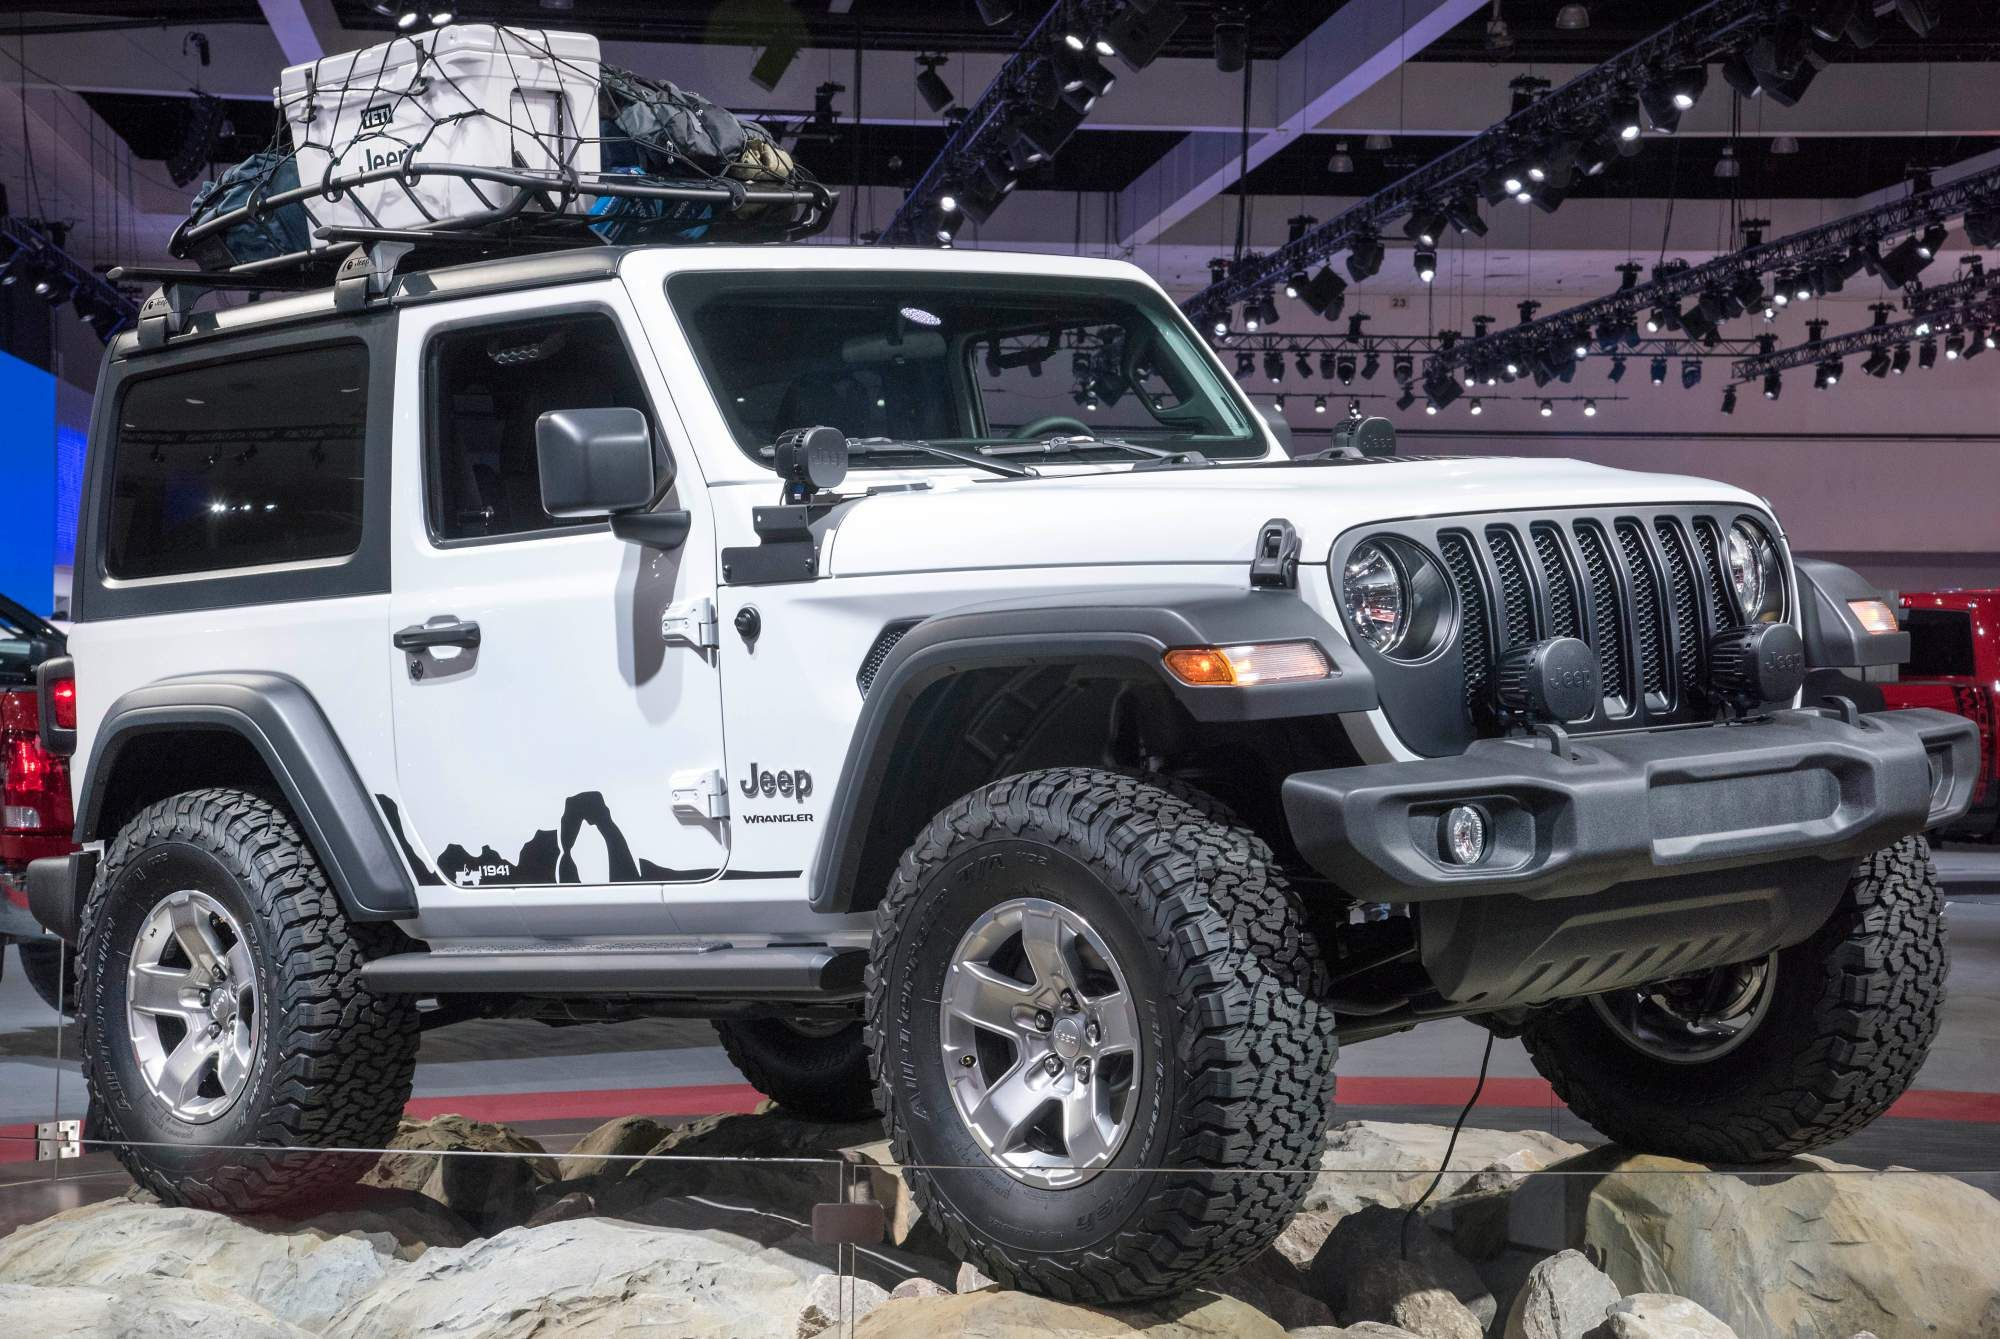 Mopar Accessories Turn 2018 Jeep Wrangler Into Extreme Off Roader For La Auto Show Jeep Wrangler Price Jeep Wrangler Models Mopar Jeep